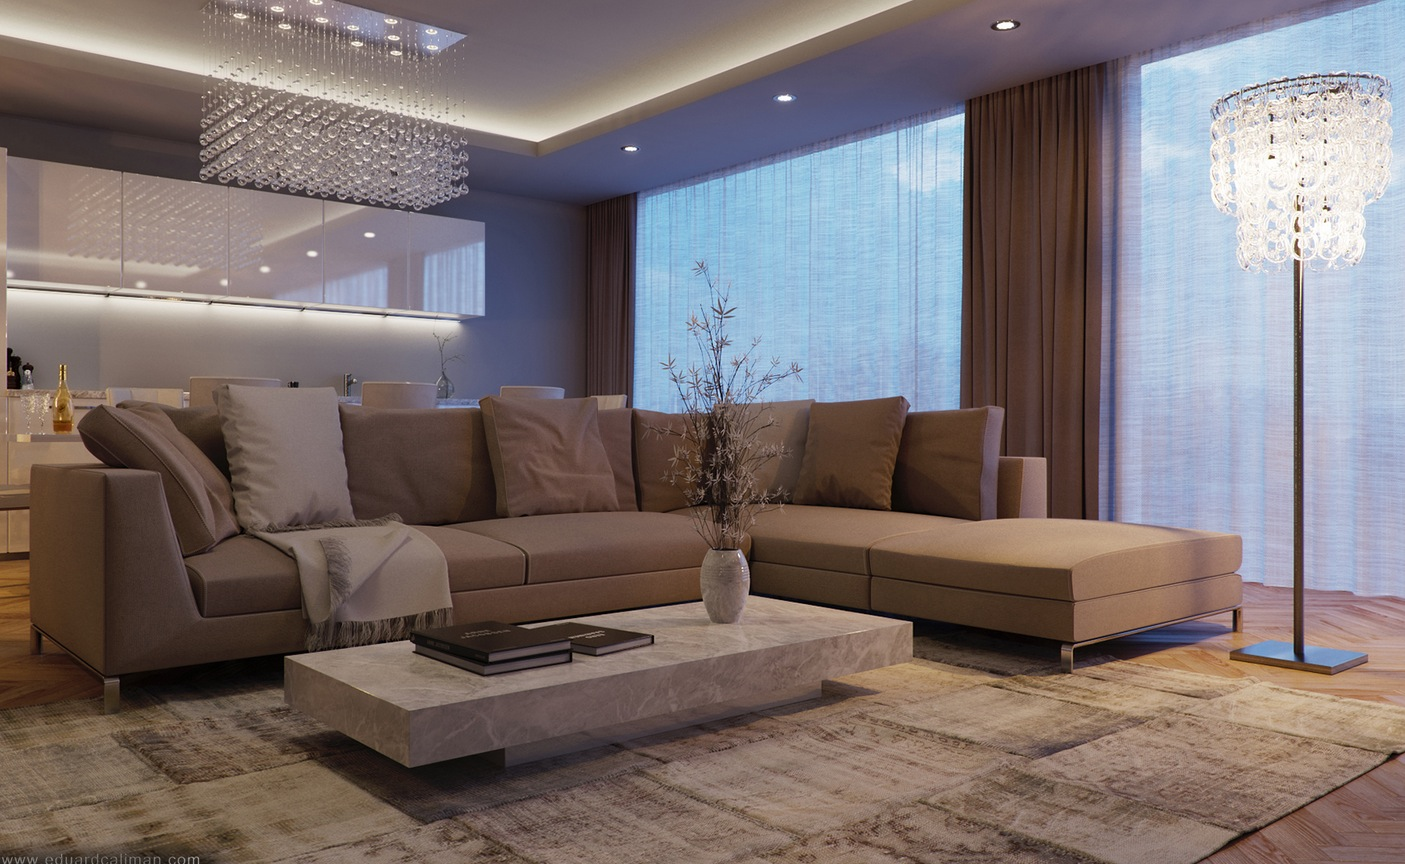 taupe sofa interior design ideas On taupe sofa living room ideas